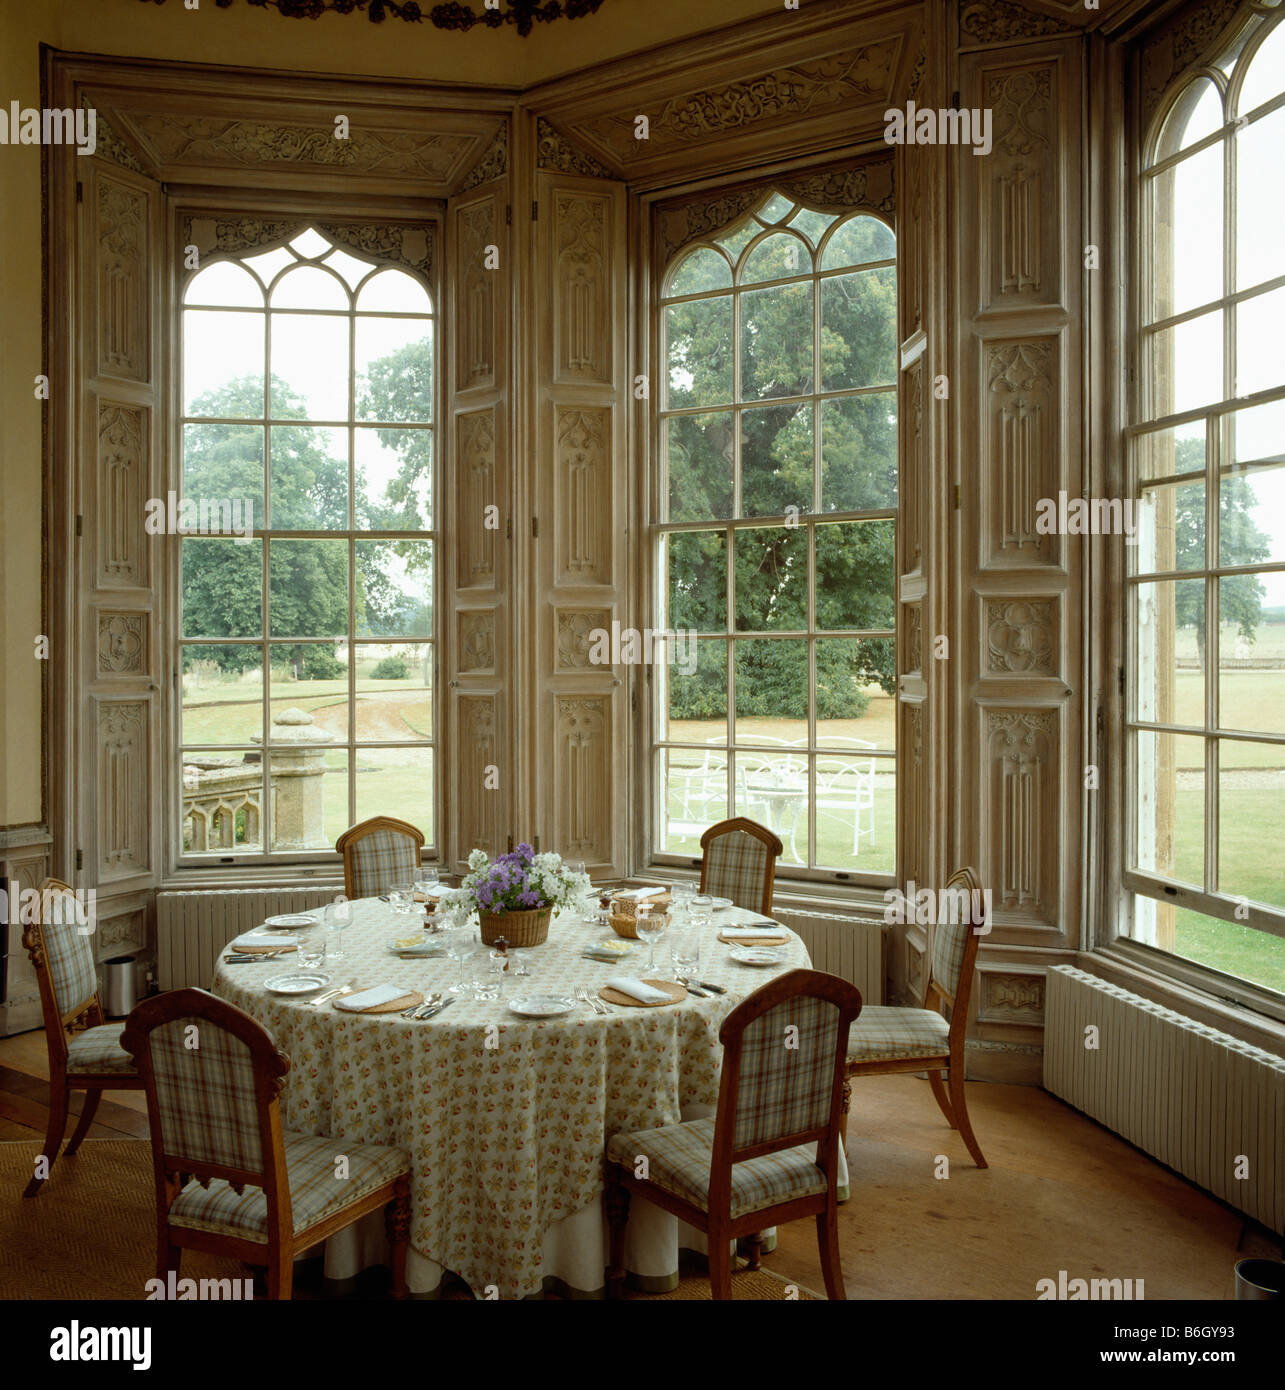 Tall country dining room sets - Stock Photo Upholstered Chairs And Table Set For Lunch In Front Of Tall Gothic Windows In Large Country Dining Room With View Of Garden